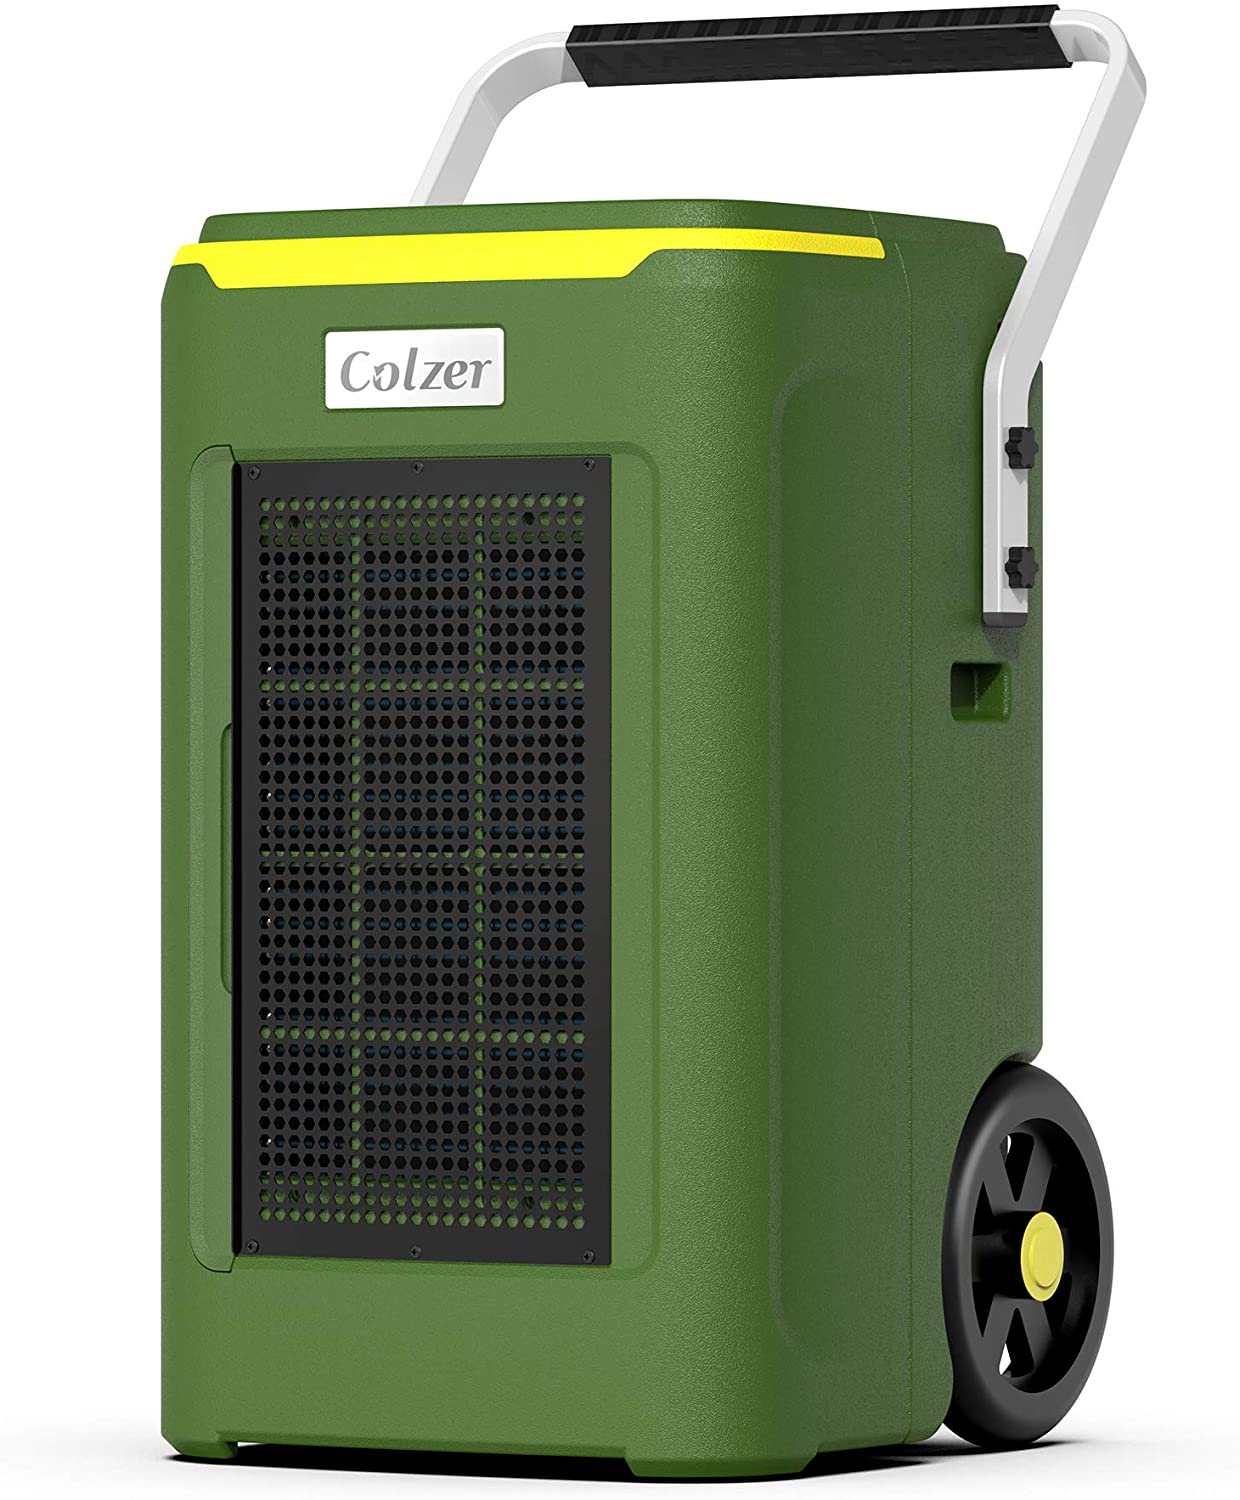 COLZER 180 Pints Commercial Dehumidifier with Pump & Drain Hose, Large Industrial Water Damage Equipment for Basements, Home, Garages & Job Sites, 180 PPD Moisture Removal